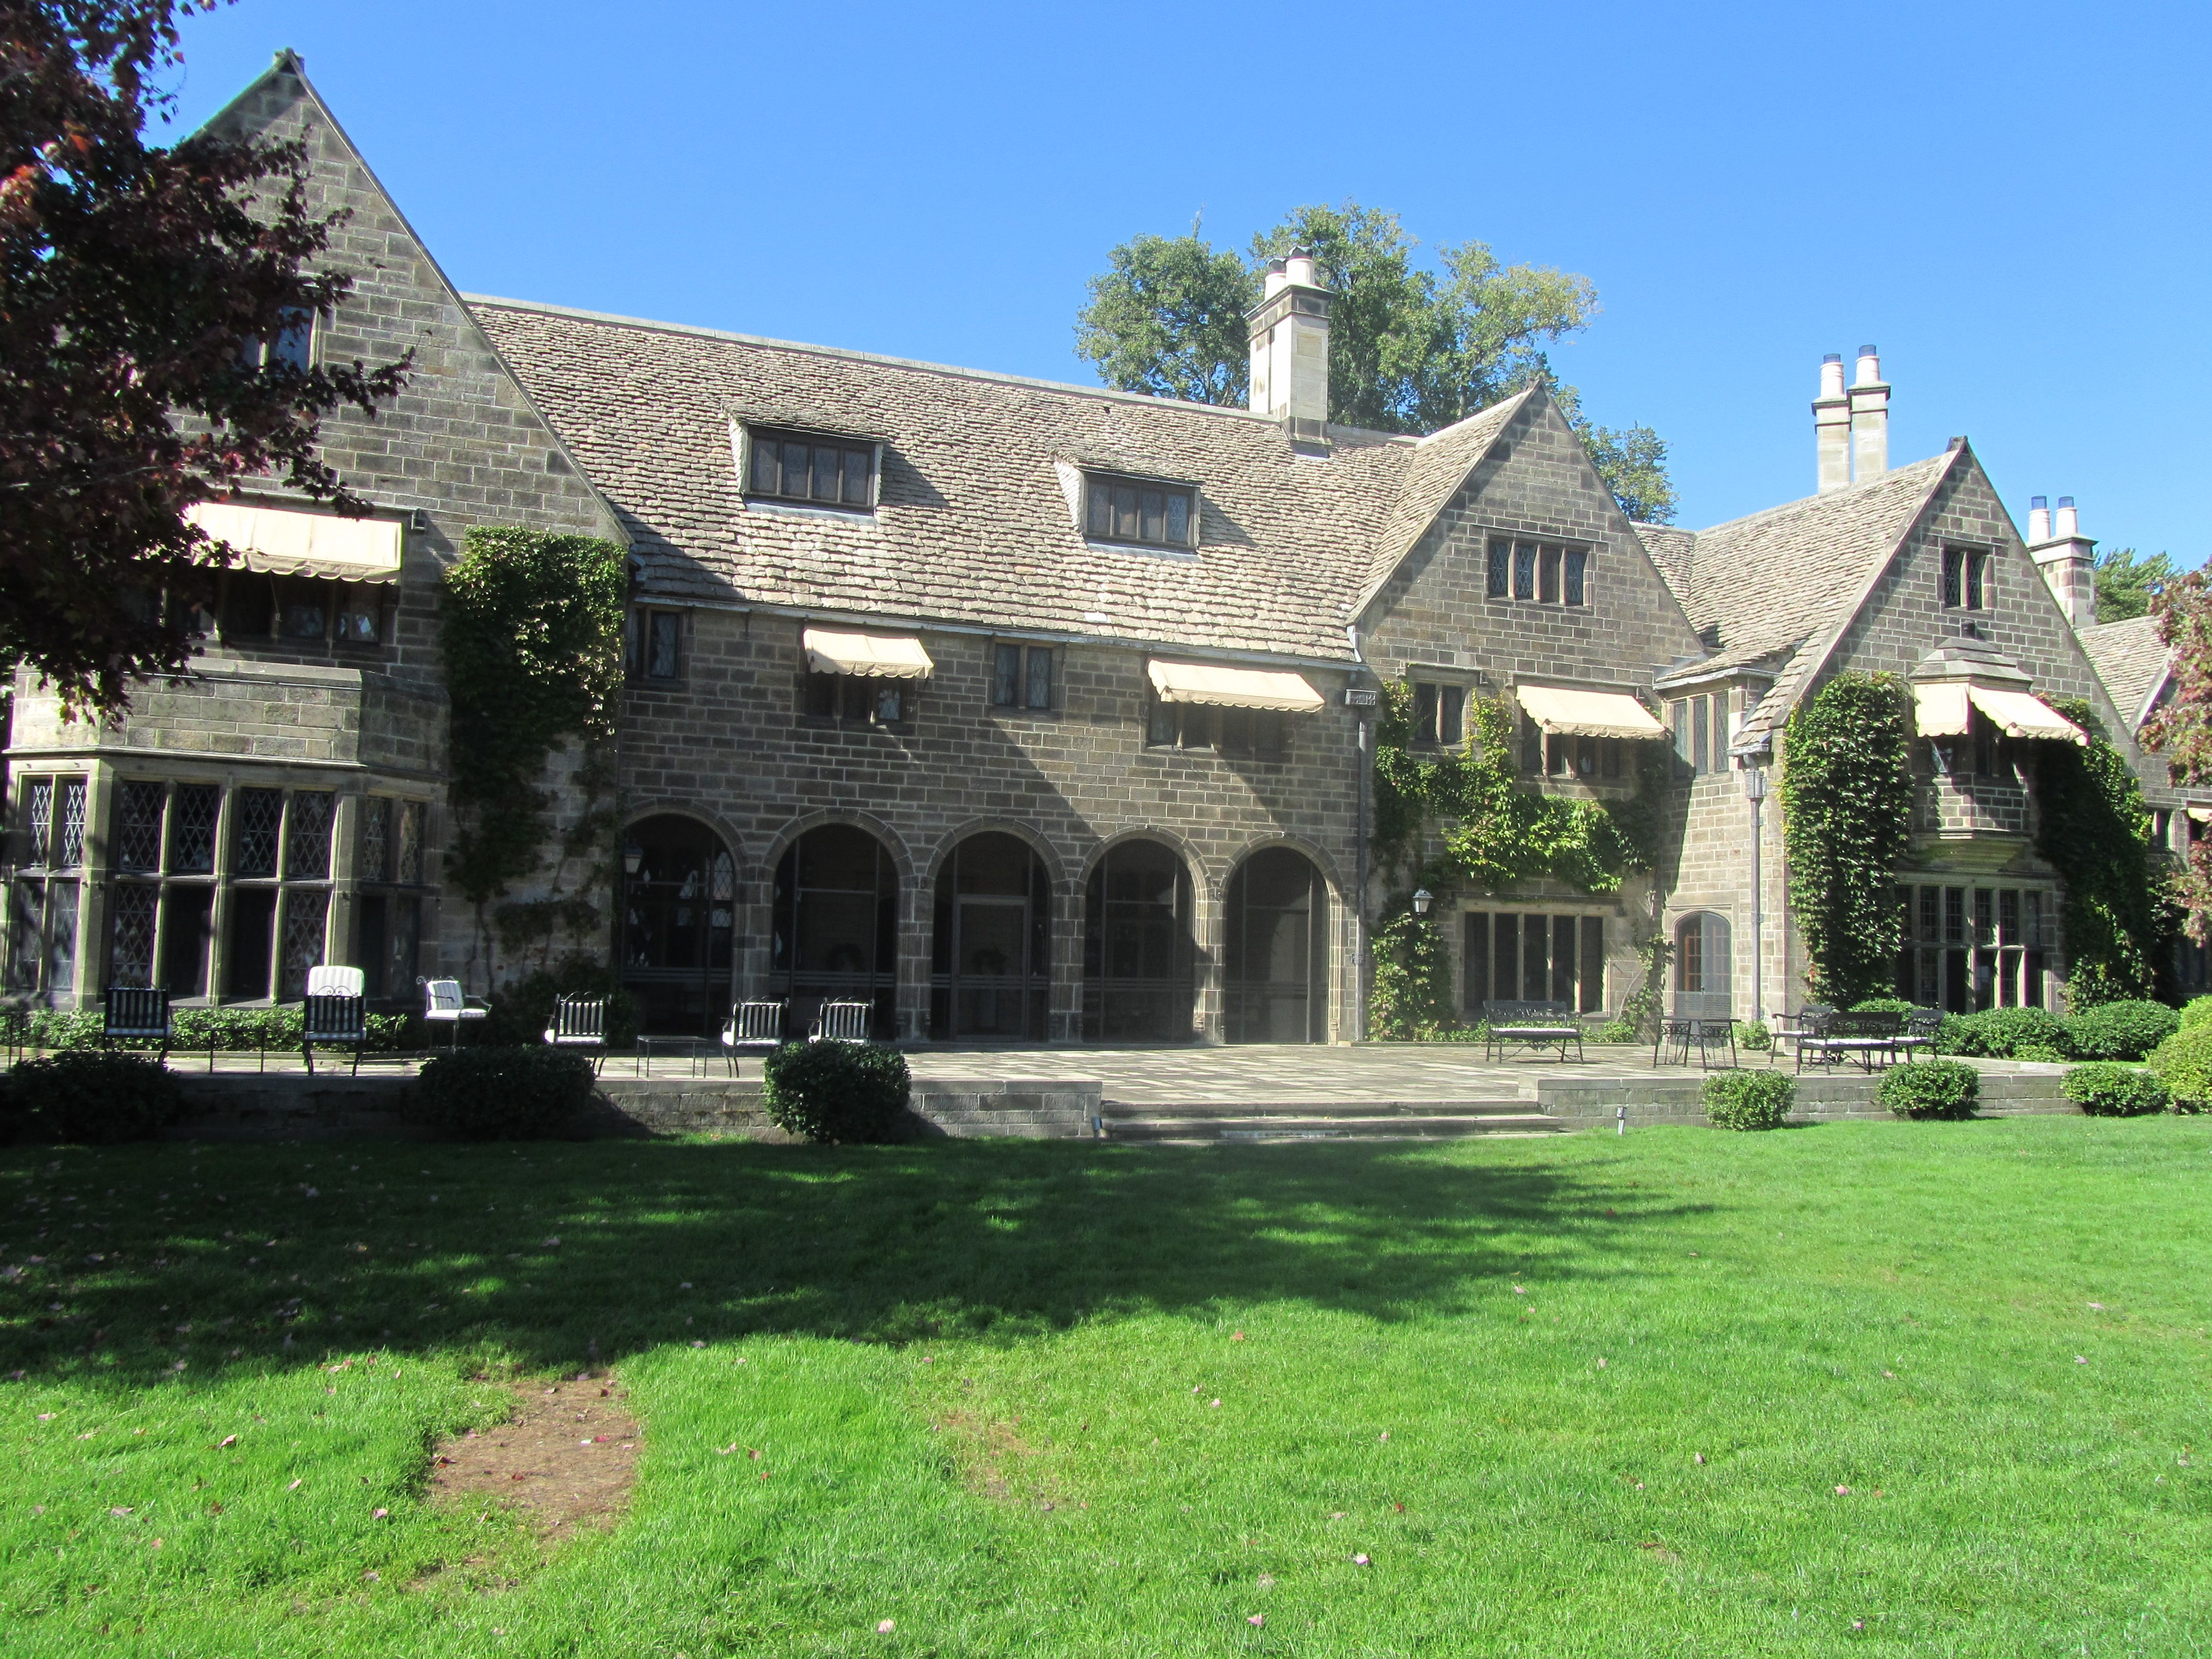 Grosse Pointe Shores Mi Edsel Ford House 1929 Son Of Henry Ford Mansions Gold Coast Edsel